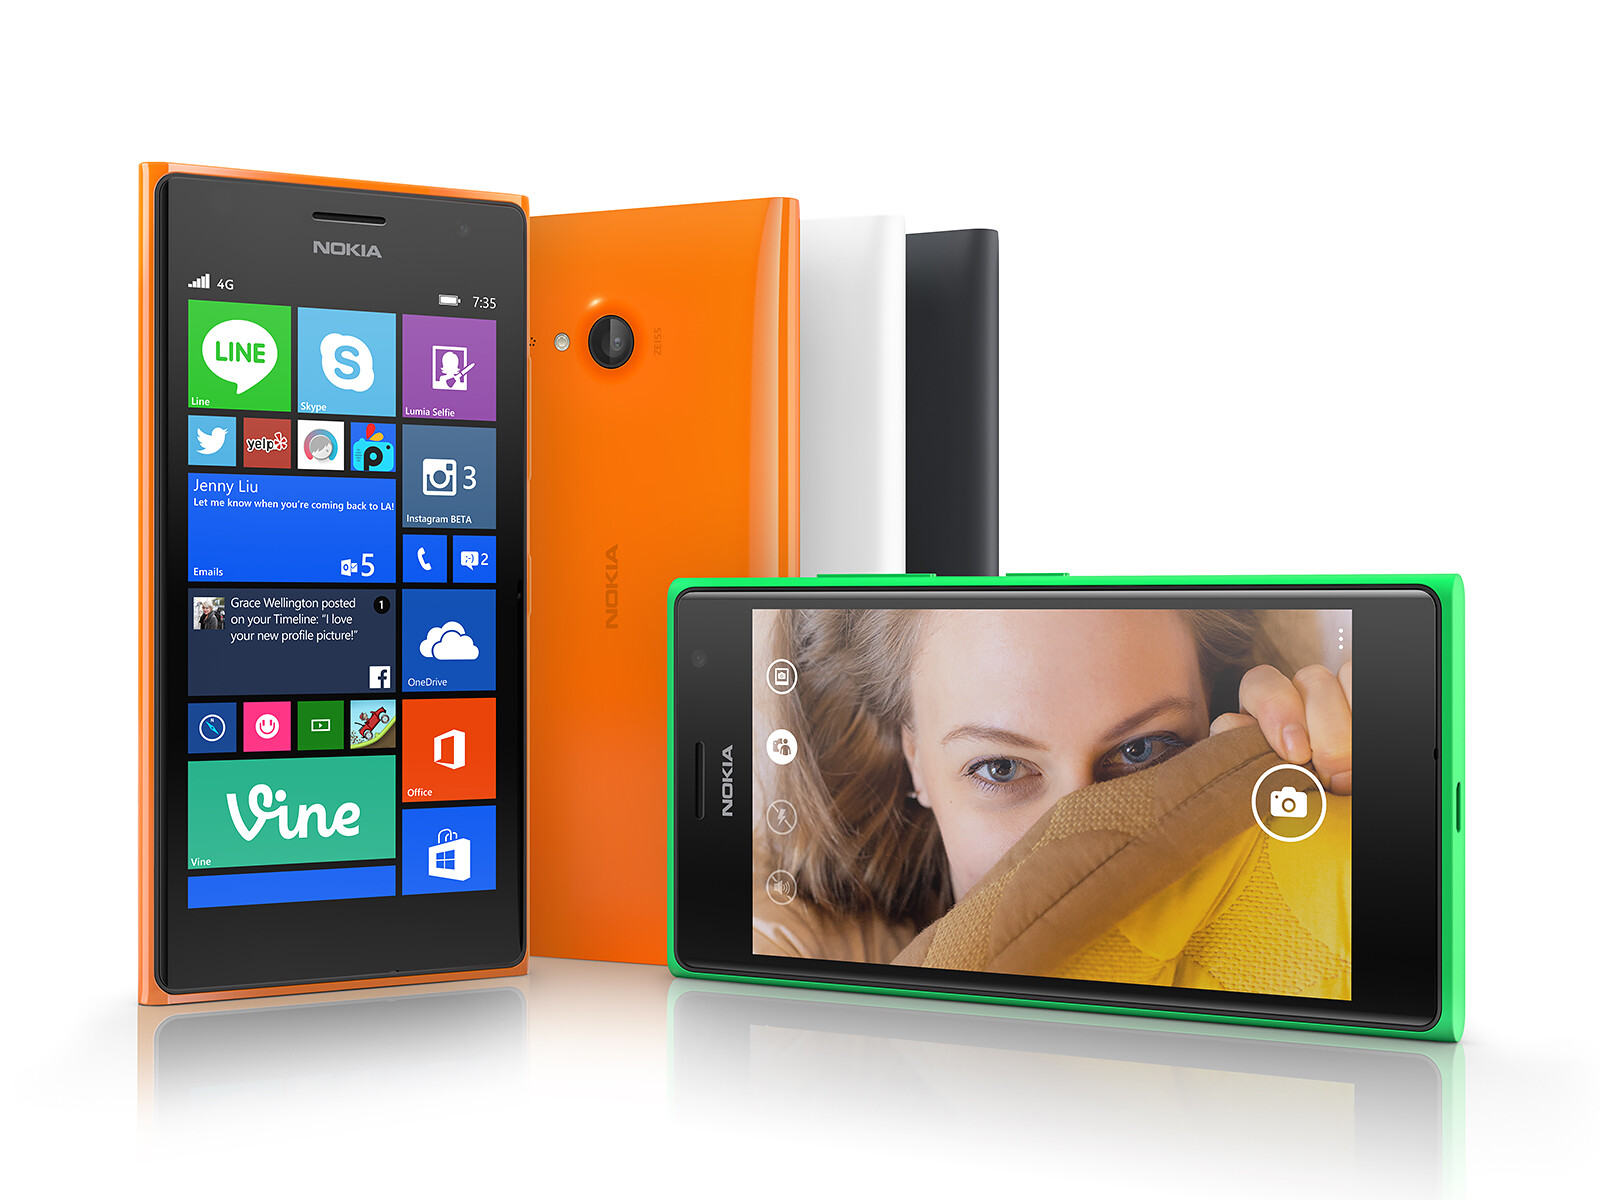 nokia lumia 730 specs. Black Bedroom Furniture Sets. Home Design Ideas